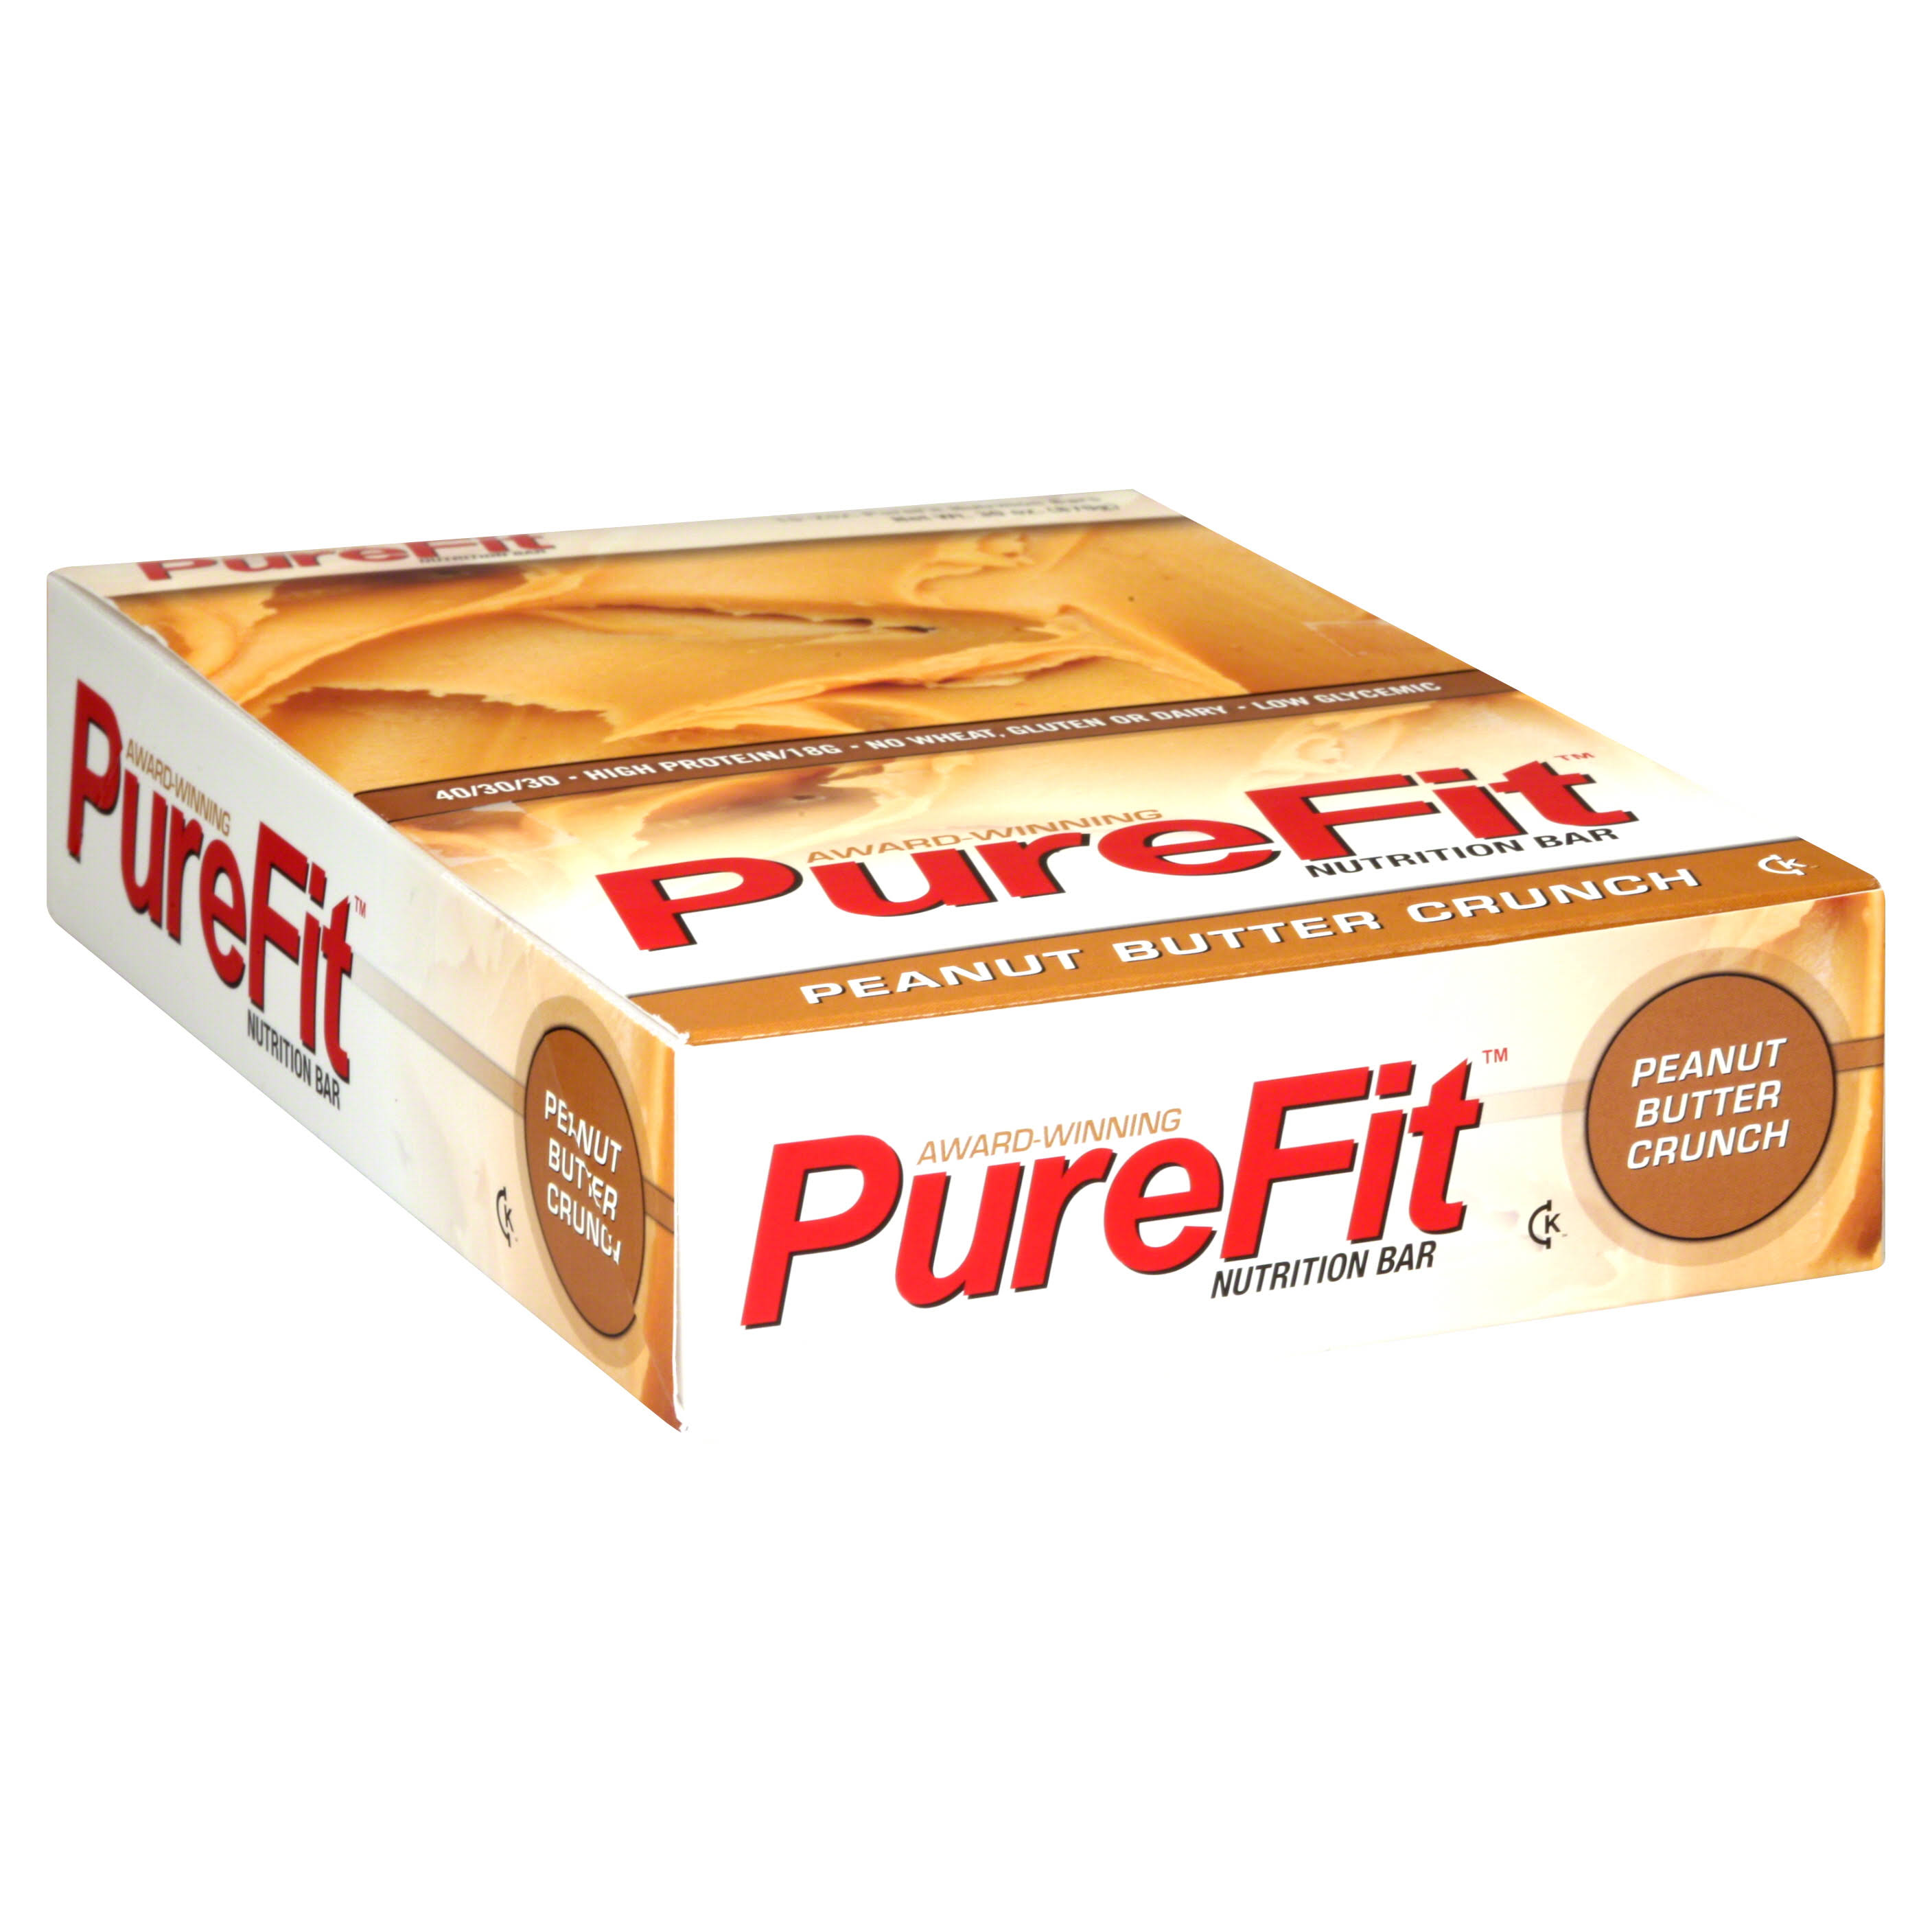 Purefit Nutrition Bars - Peanut Butter Crunch, 15ct, 2oz